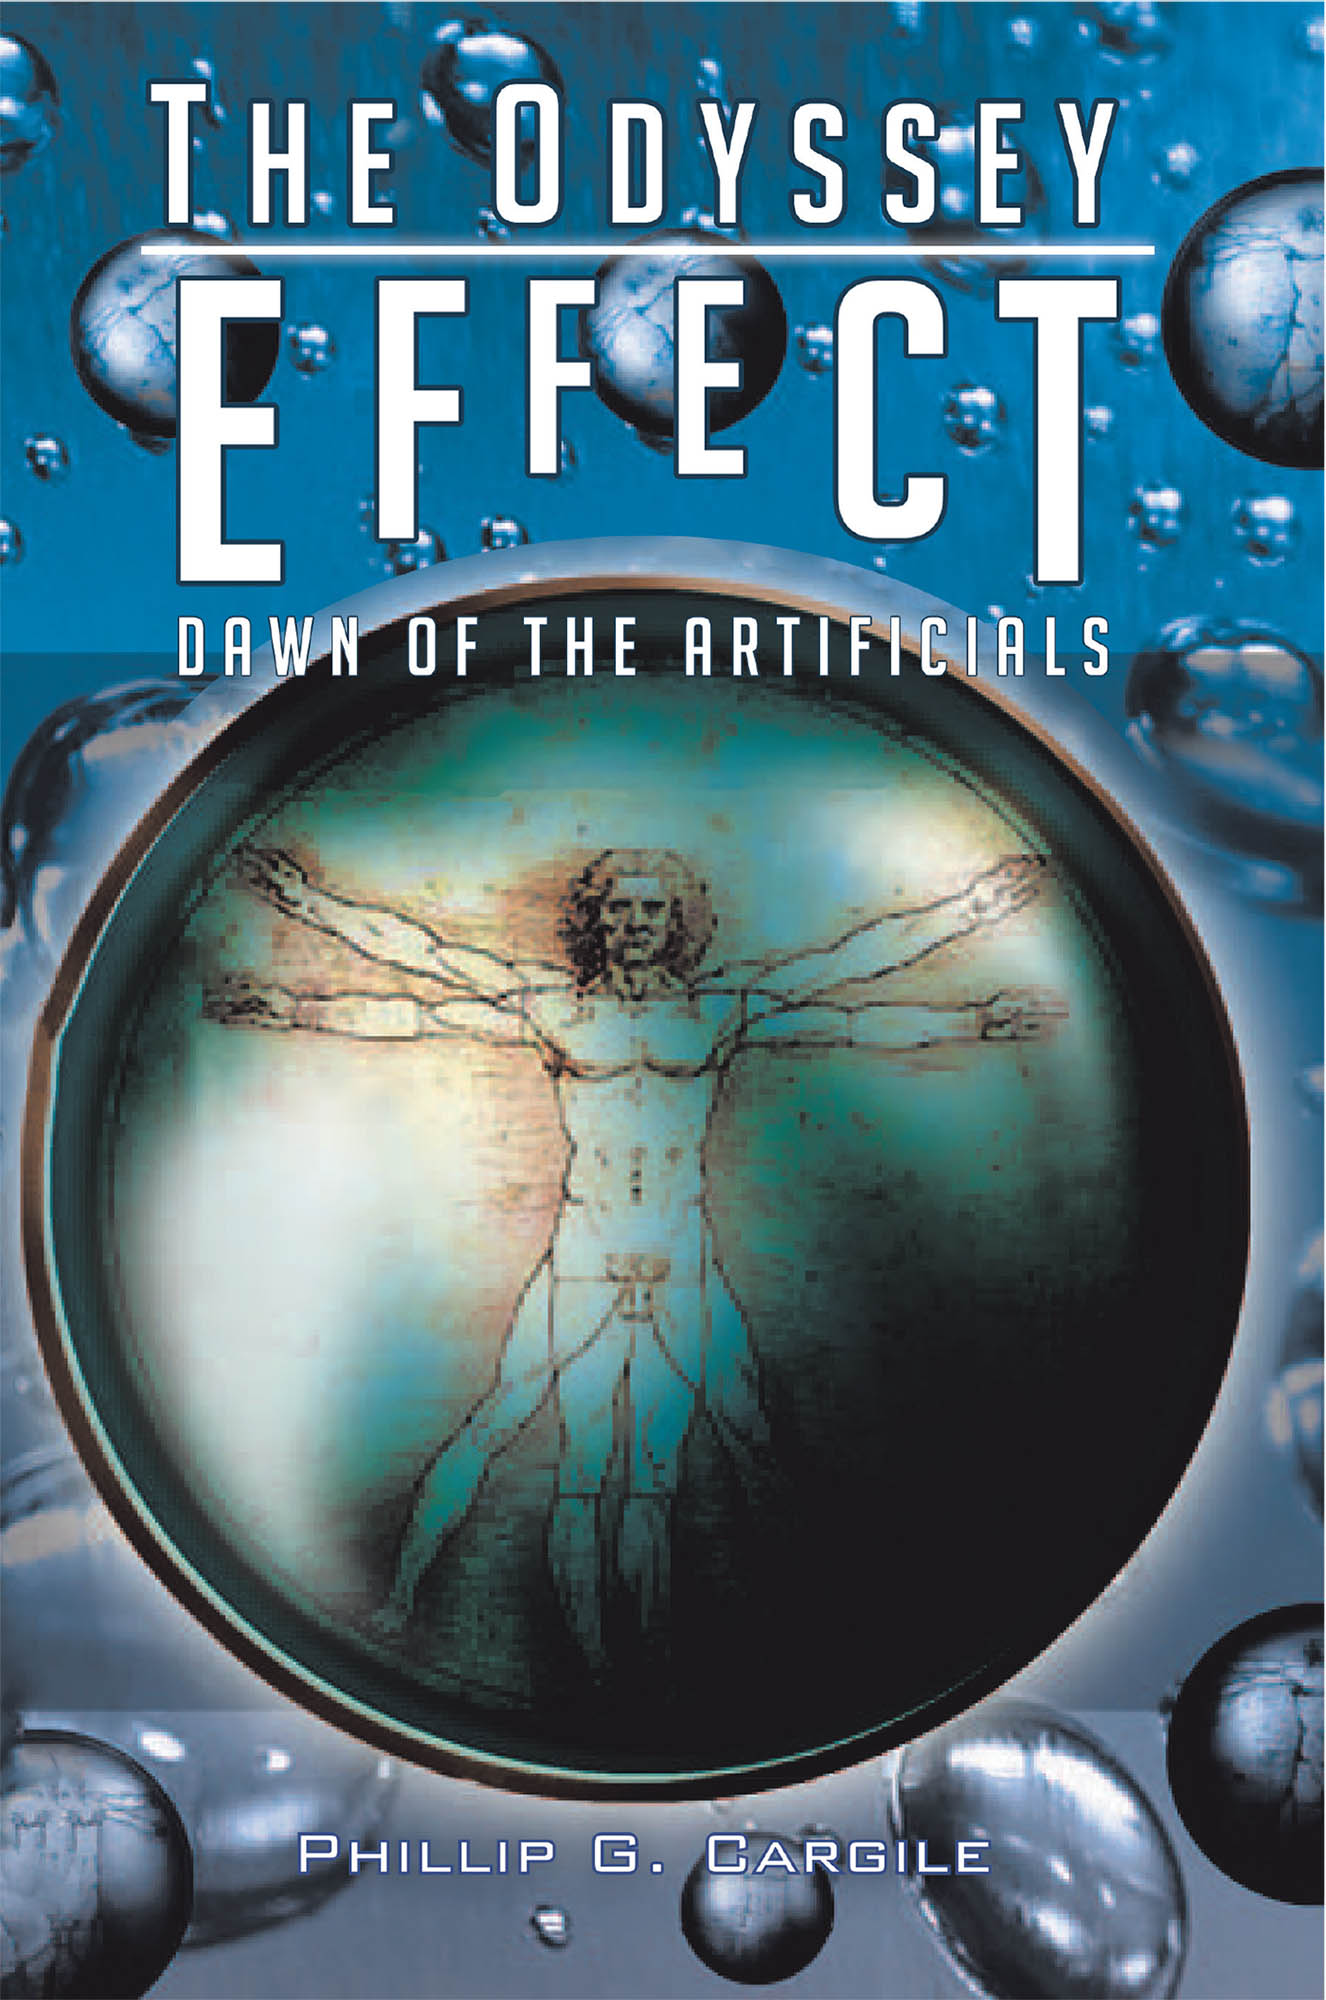 Phillip G. Cargile's New Book 'The Odyssey Effect' is a Thrilling Mission of Saving Mankind From the Annexation of Artificial Intelligences